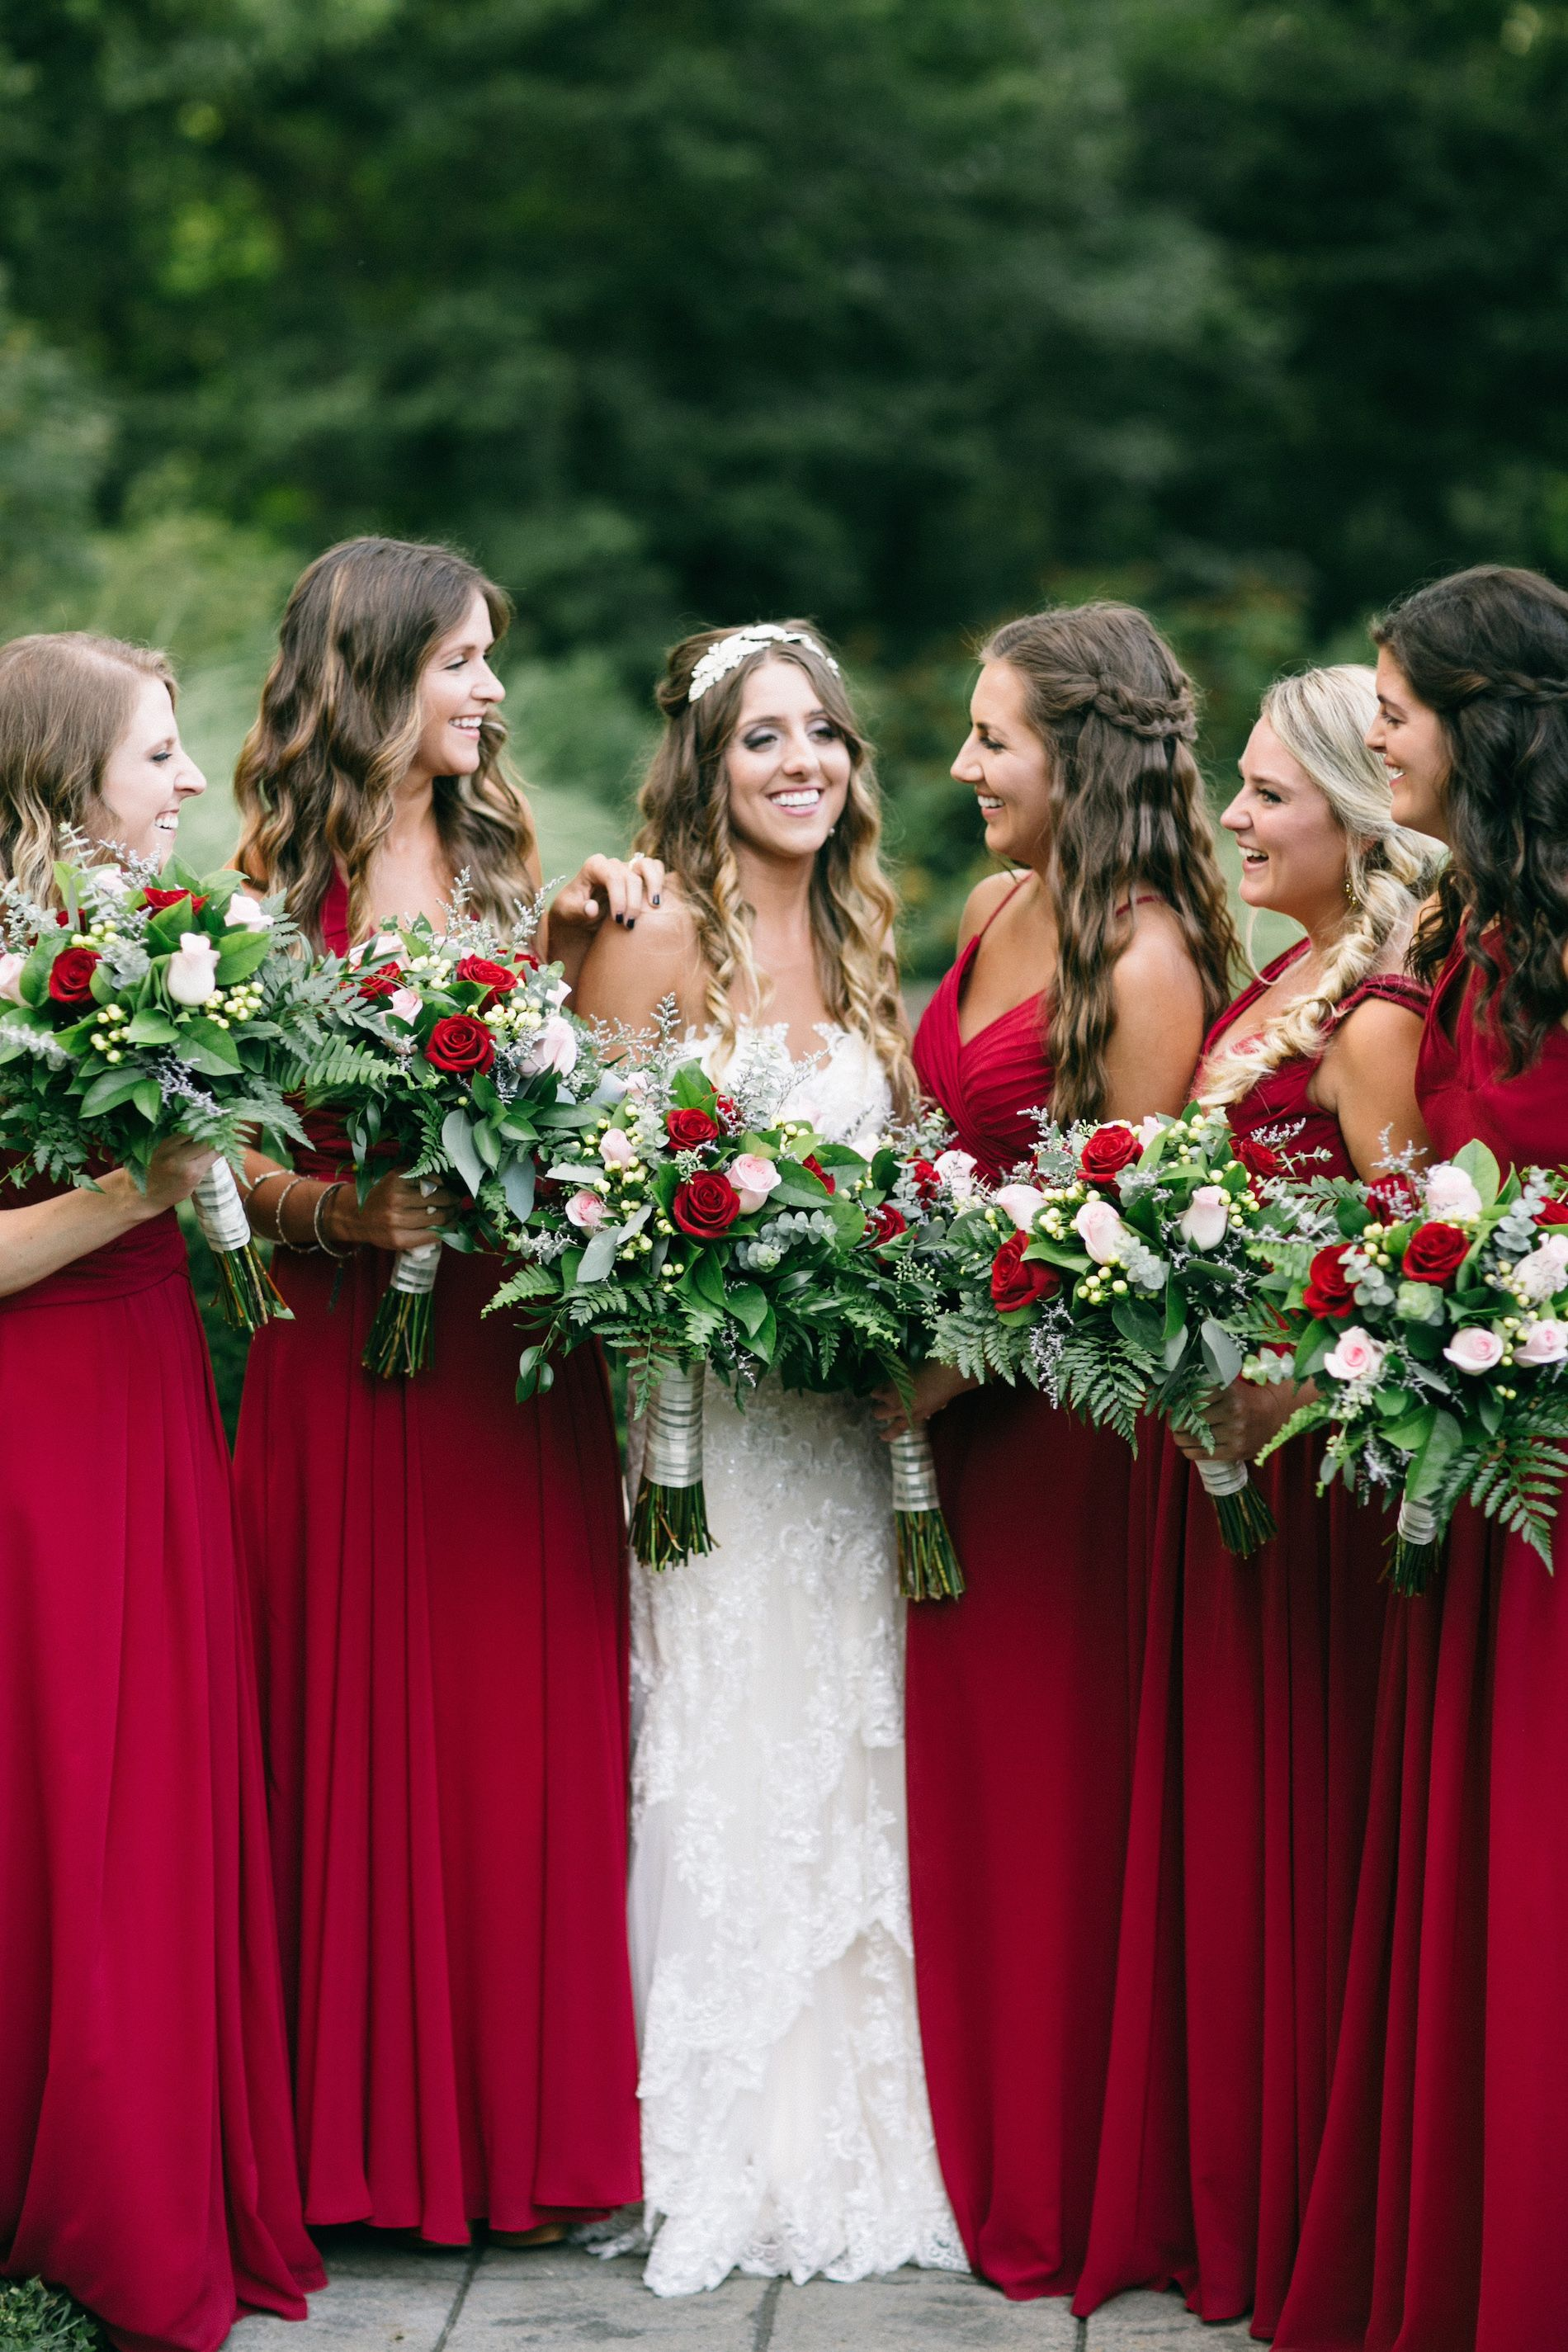 Chic marquee wedding with festive touches chic wedding the cherry shade looks ultra flattering on all of the bridesmaids skin toneslated 75 stylish bridesmaid dresses that define ombrellifo Image collections